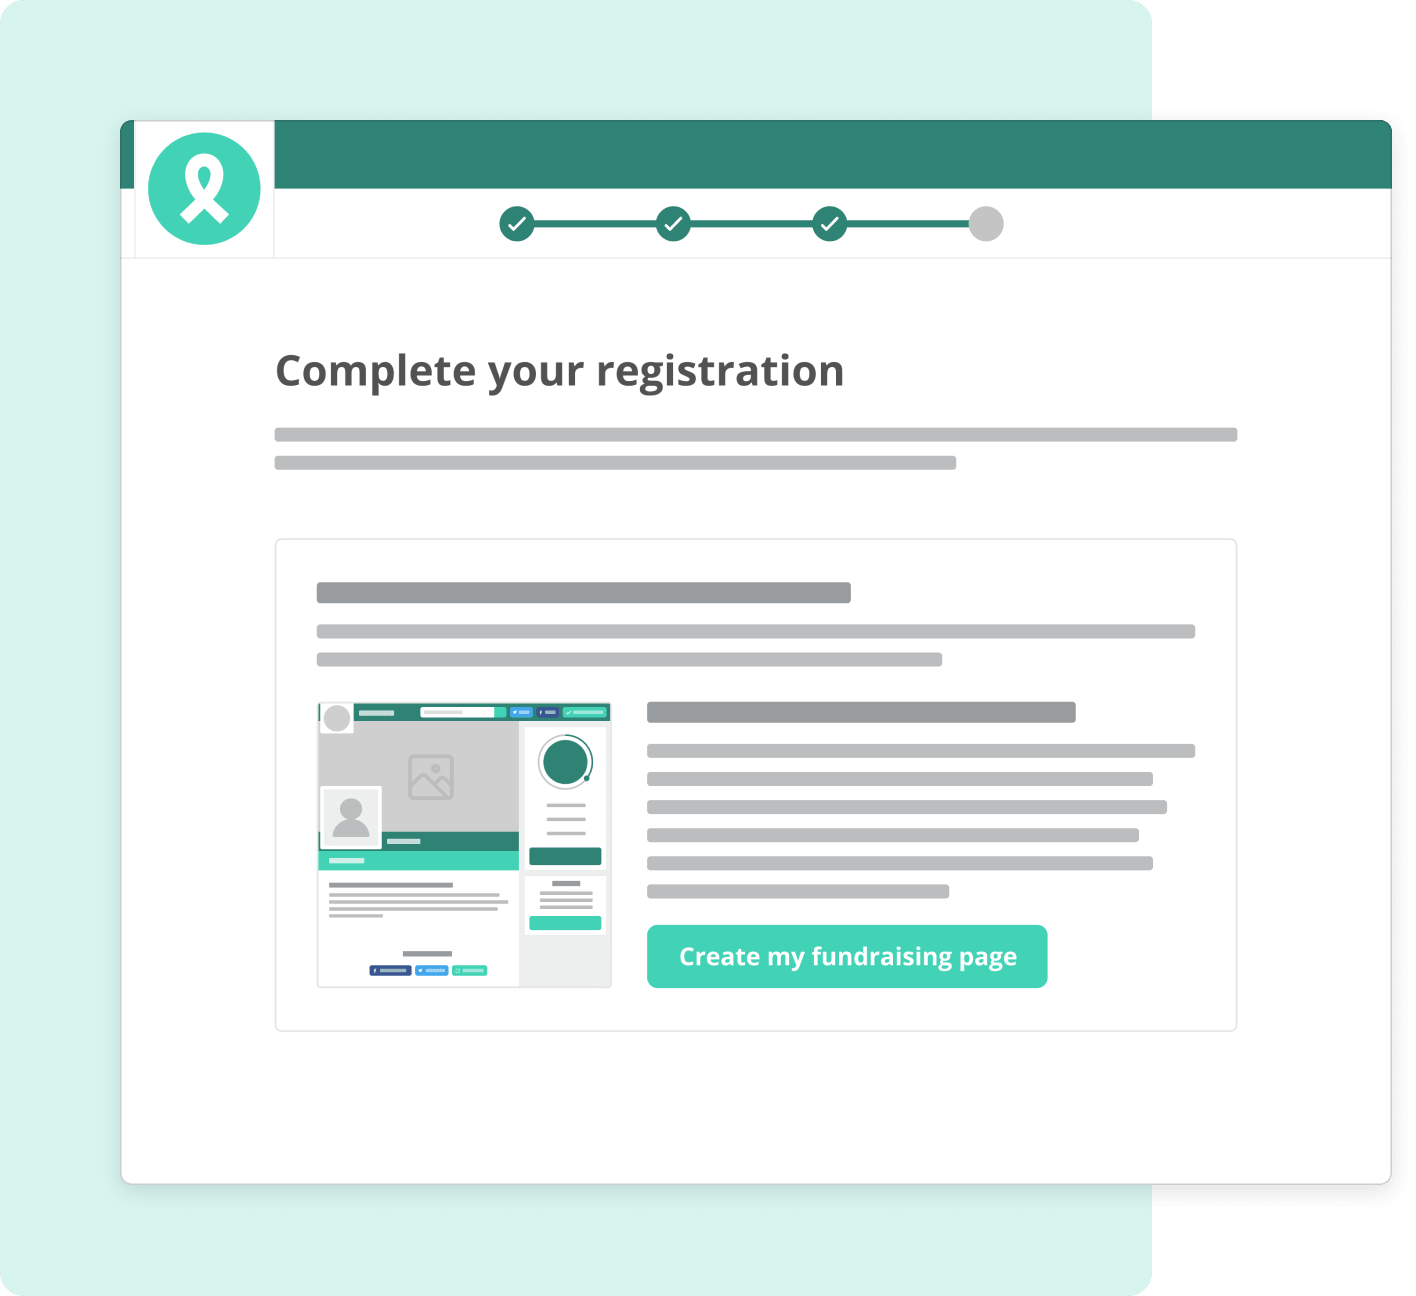 Screenshot of automatic fundraising page creation with event registration